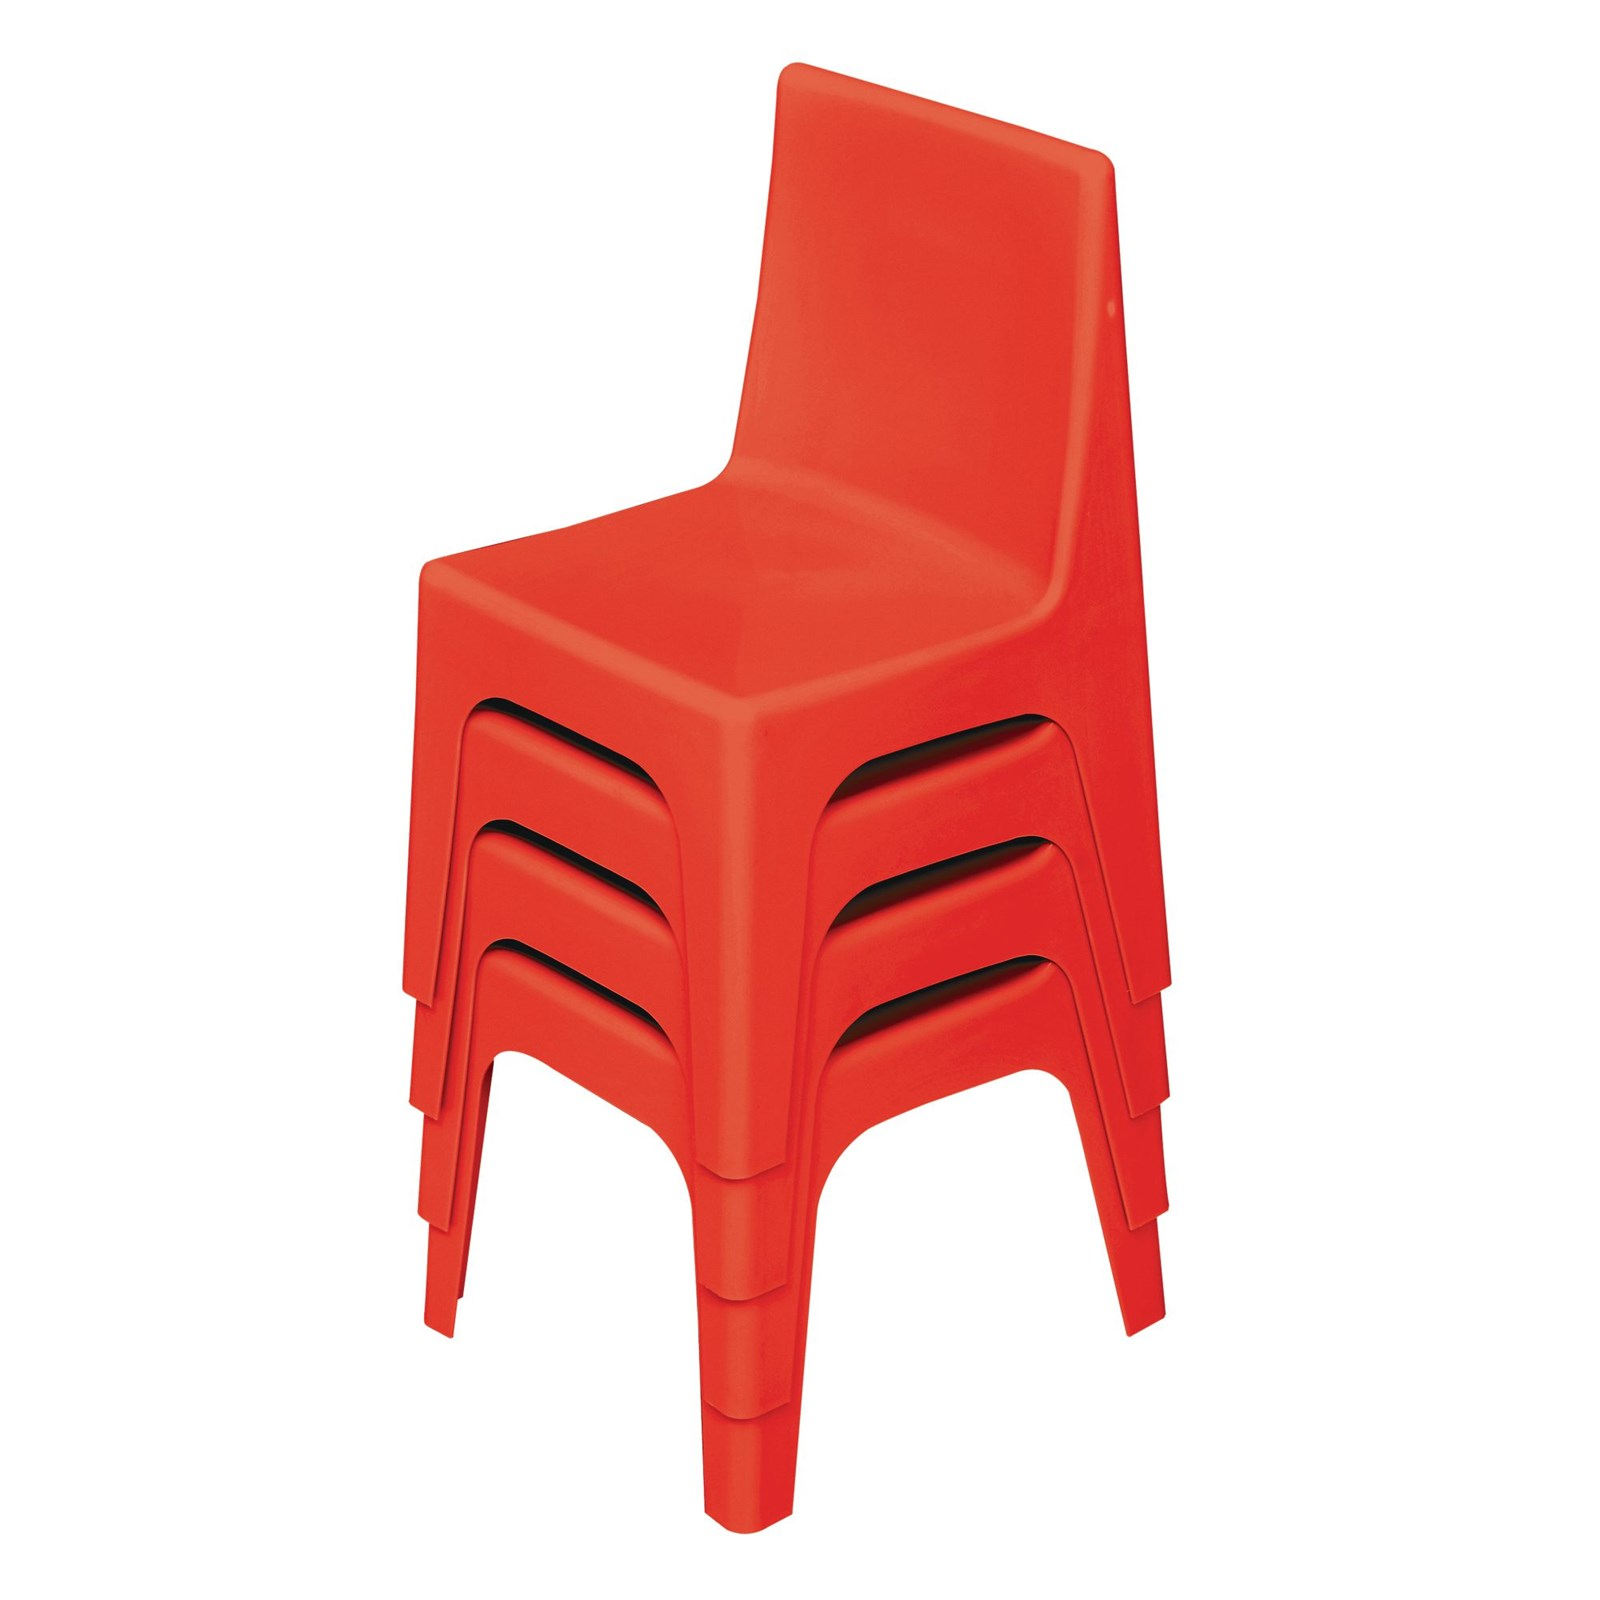 Classroom Furniture Early Years : Early years chairs seat height mm red hope education